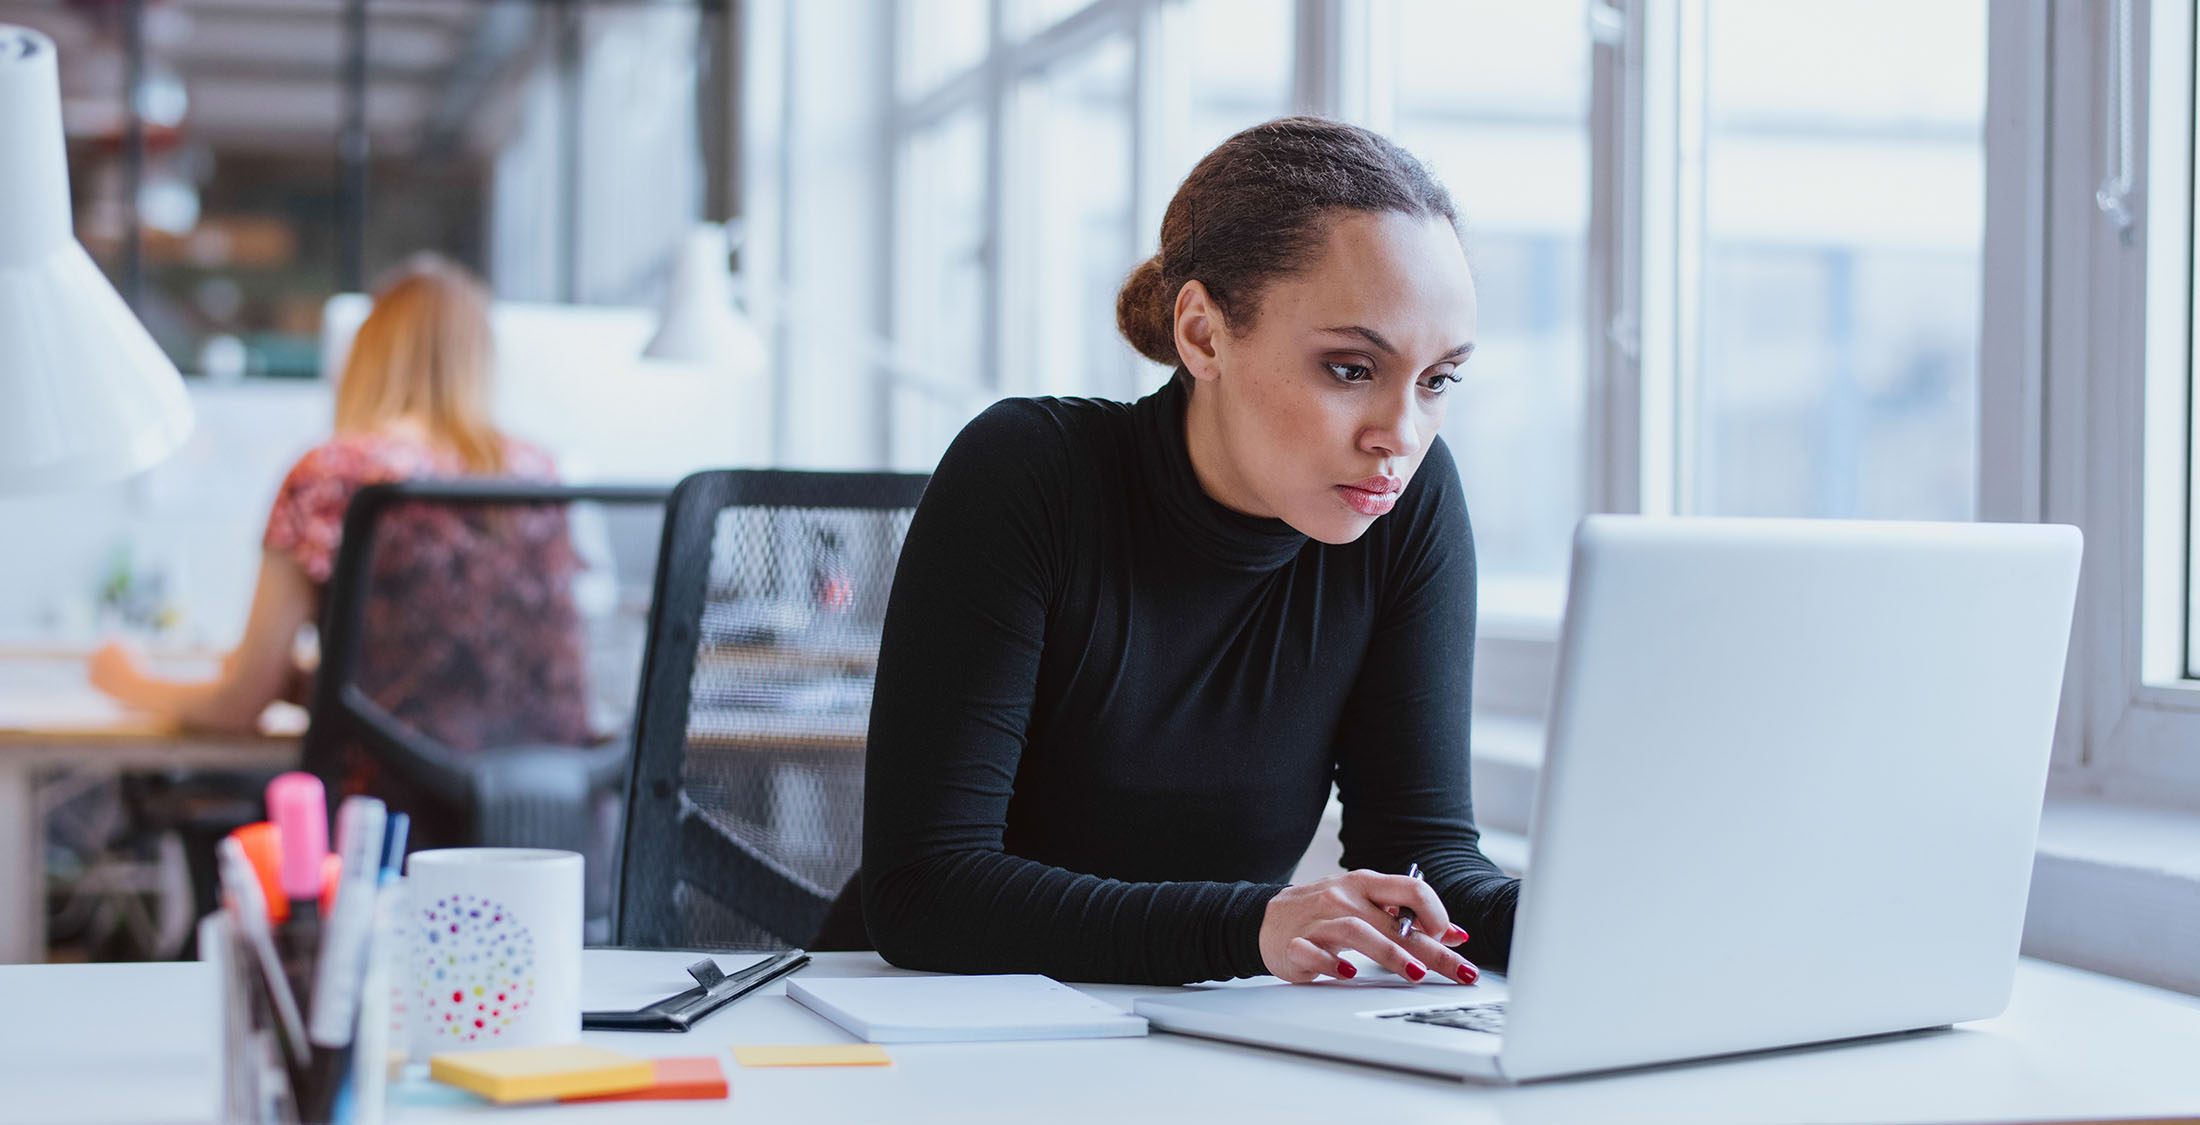 woman focused on computer at work